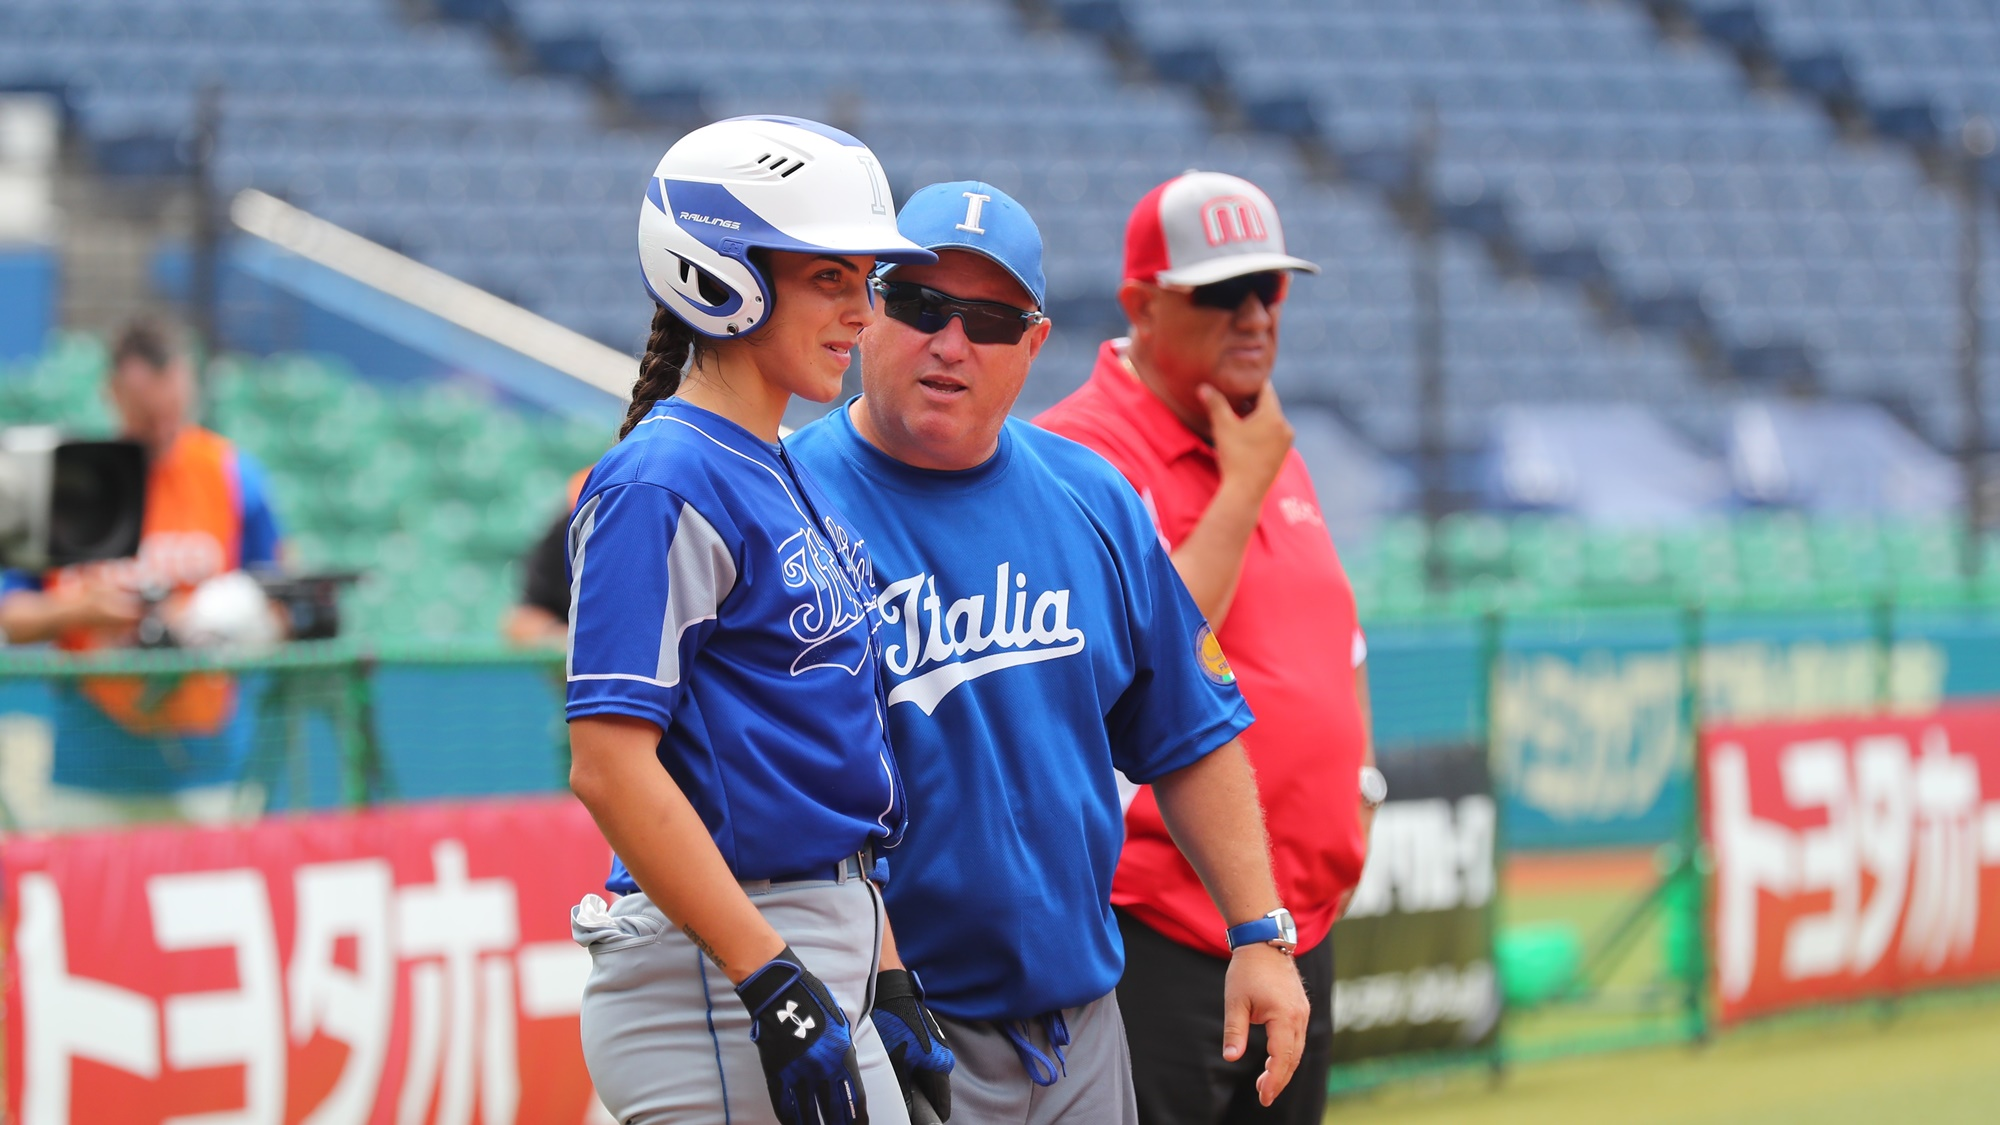 Italy's third base coach Pizzolini talks to catcher Erika Piancastelli